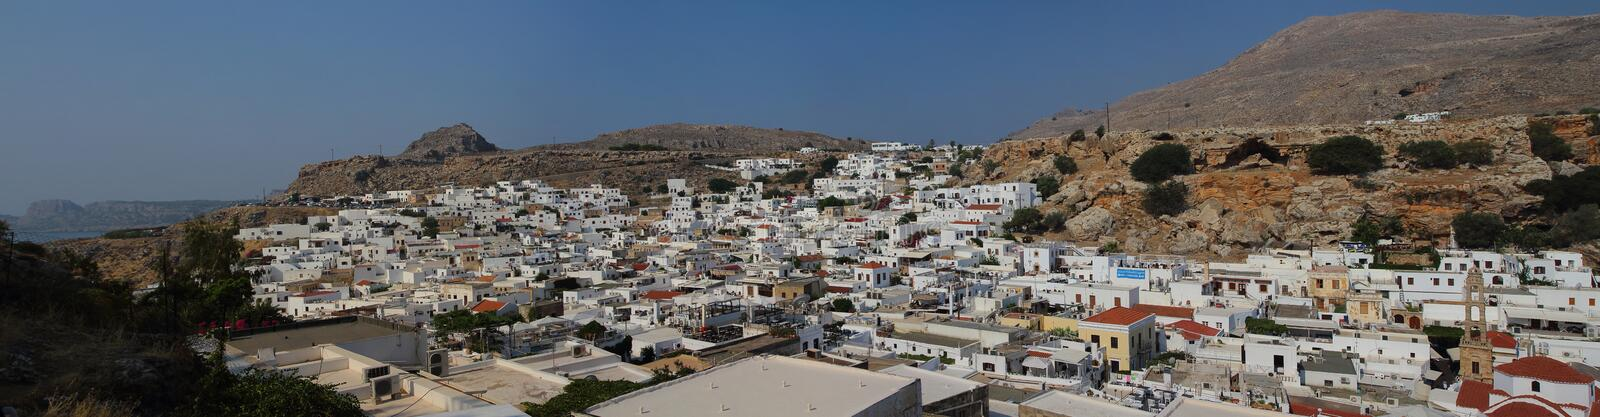 City of Lindos in Rhodes, Greece. City of Lindos in Rhodes in Greece stock photos